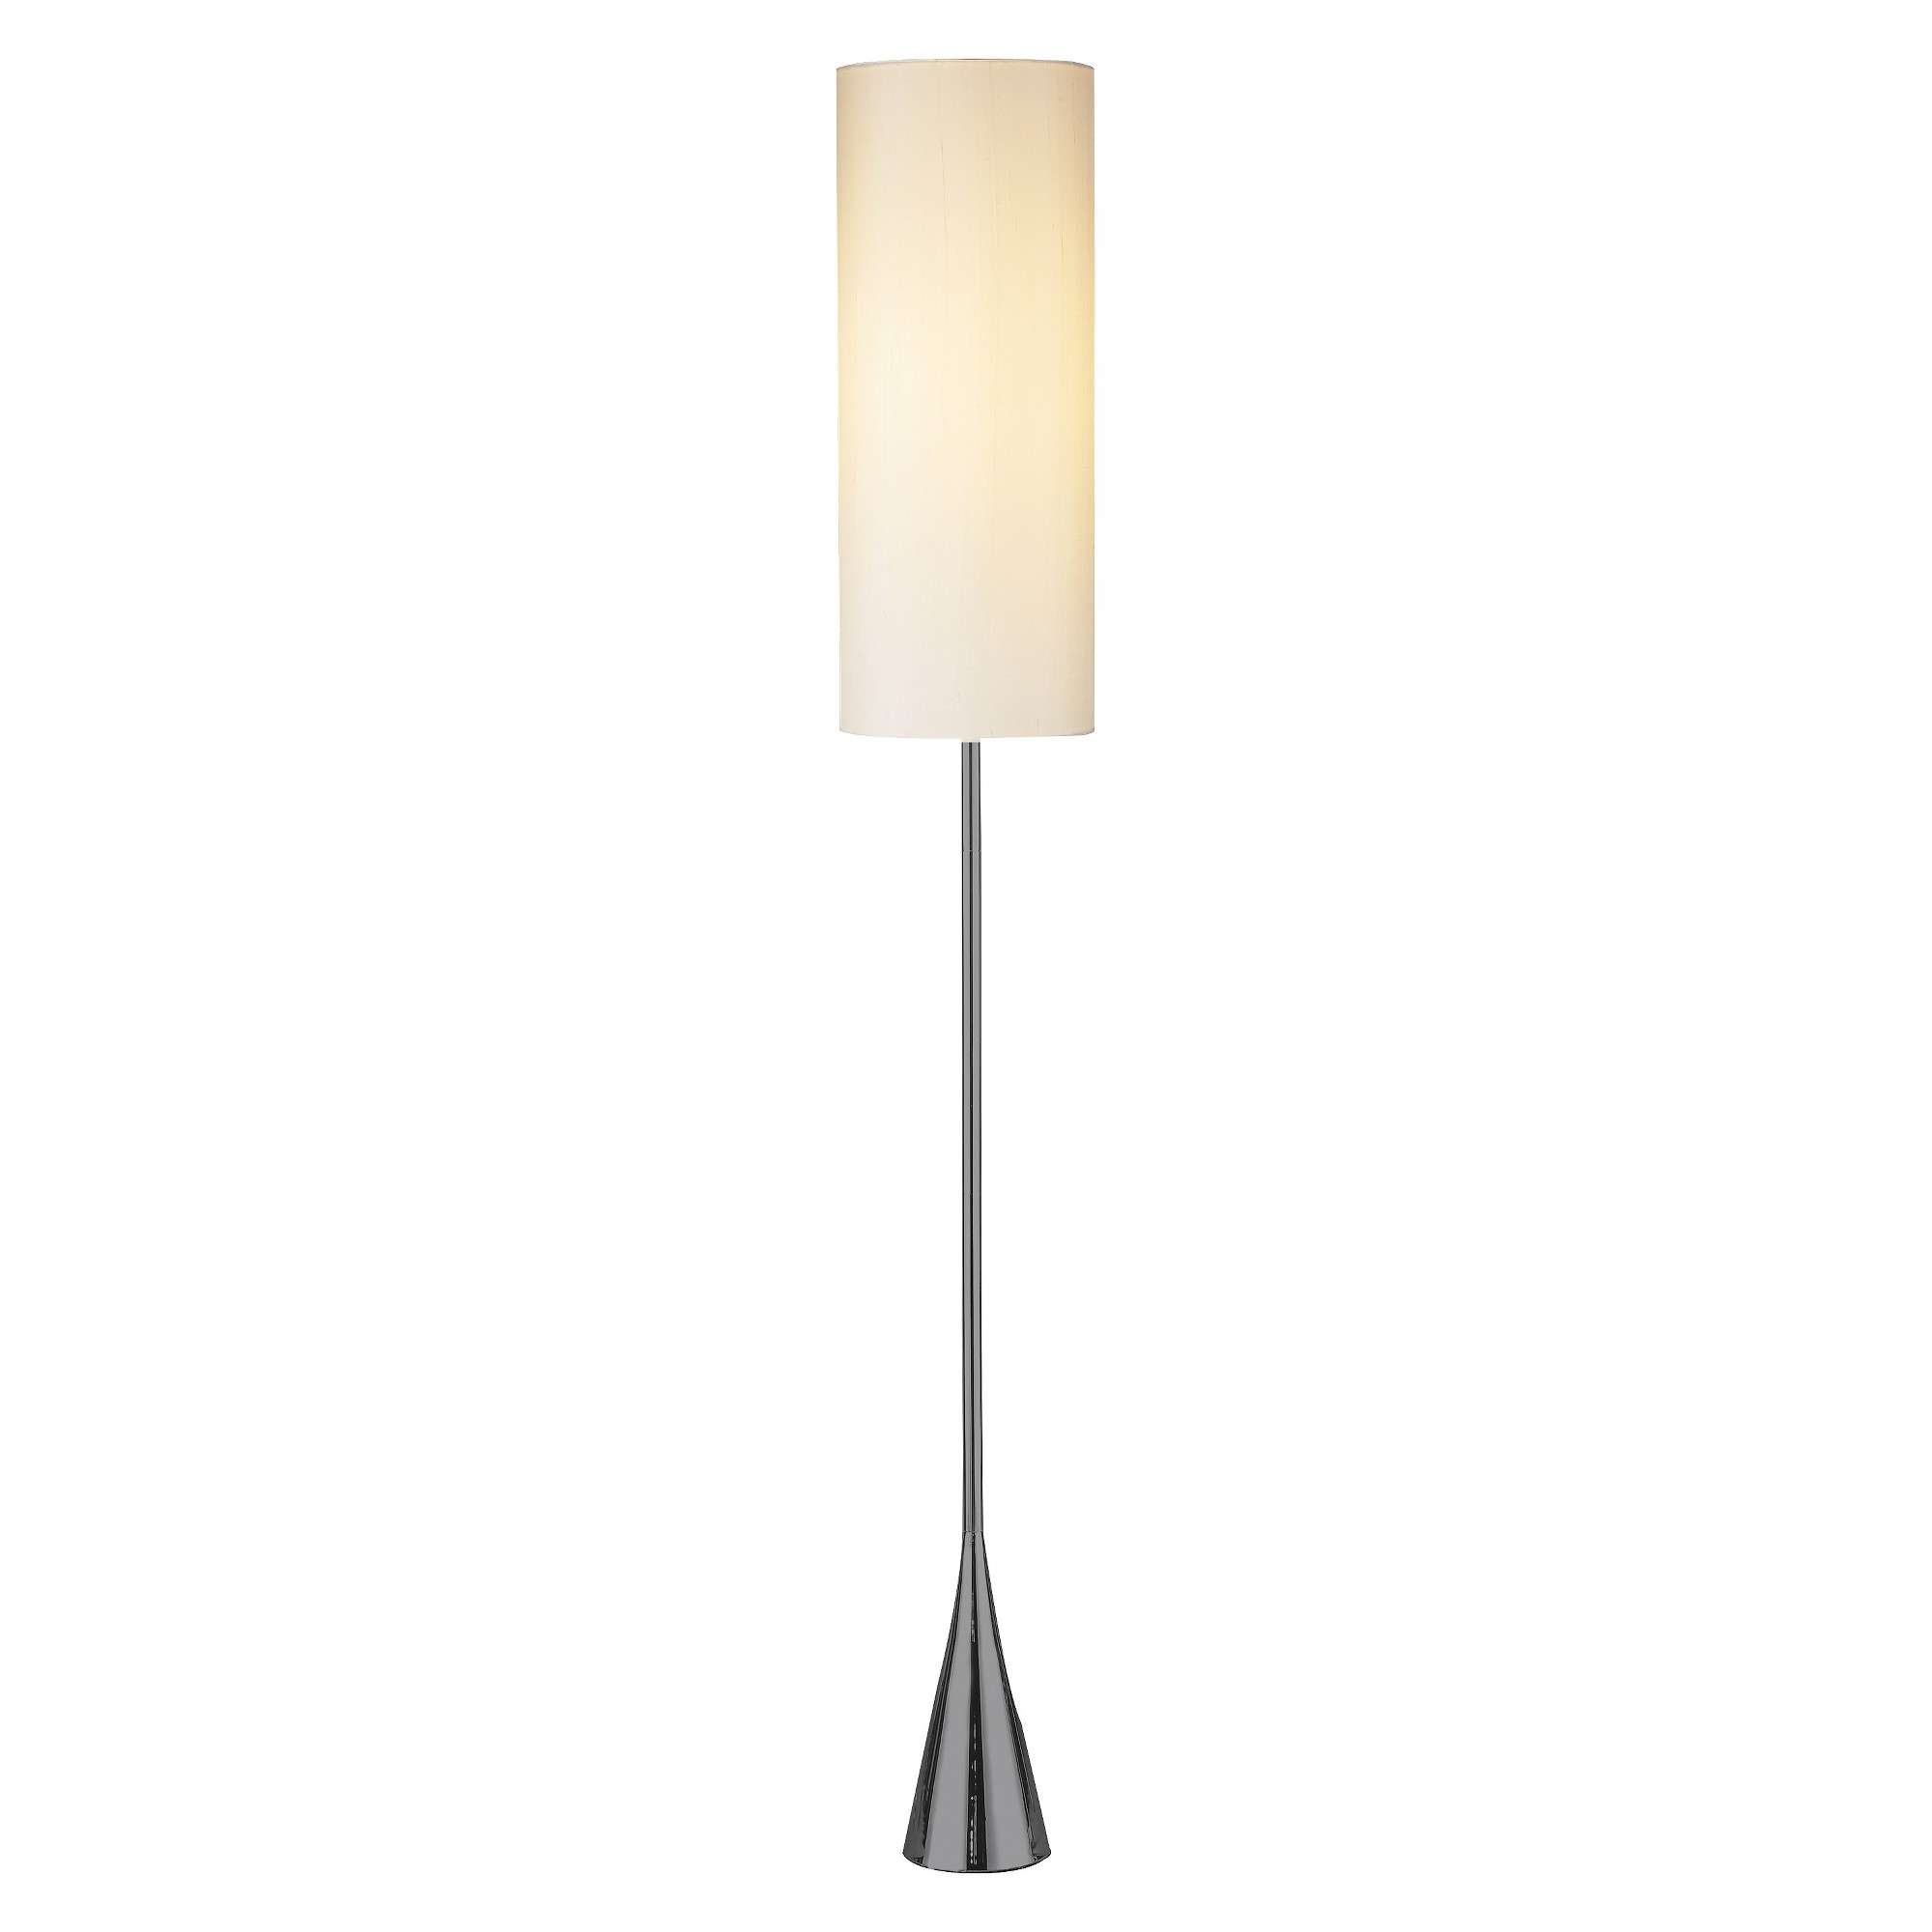 Adesso bella floor lamp black silver floor lamp and products